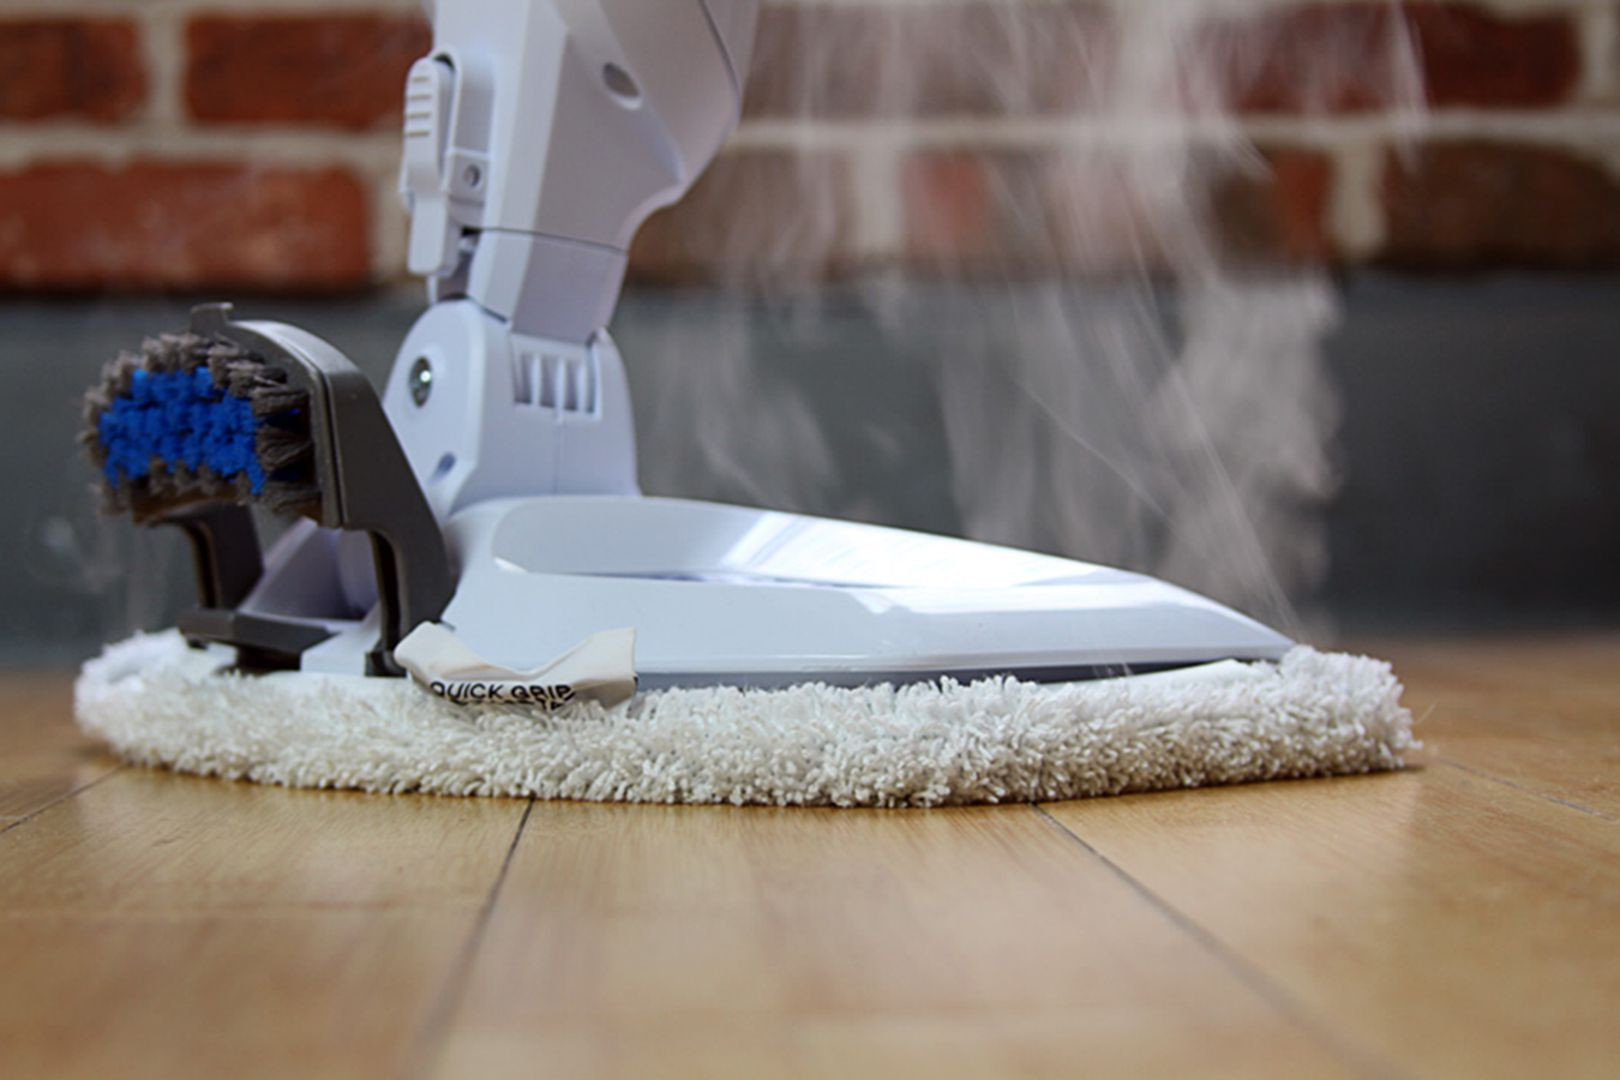 bona hardwood floor care system reviews of use a steam mop efficiently if you want clean floors intended for steam mop 33683344996 29f26c2761 o 58f116ab3df78cd3fc1c2c16